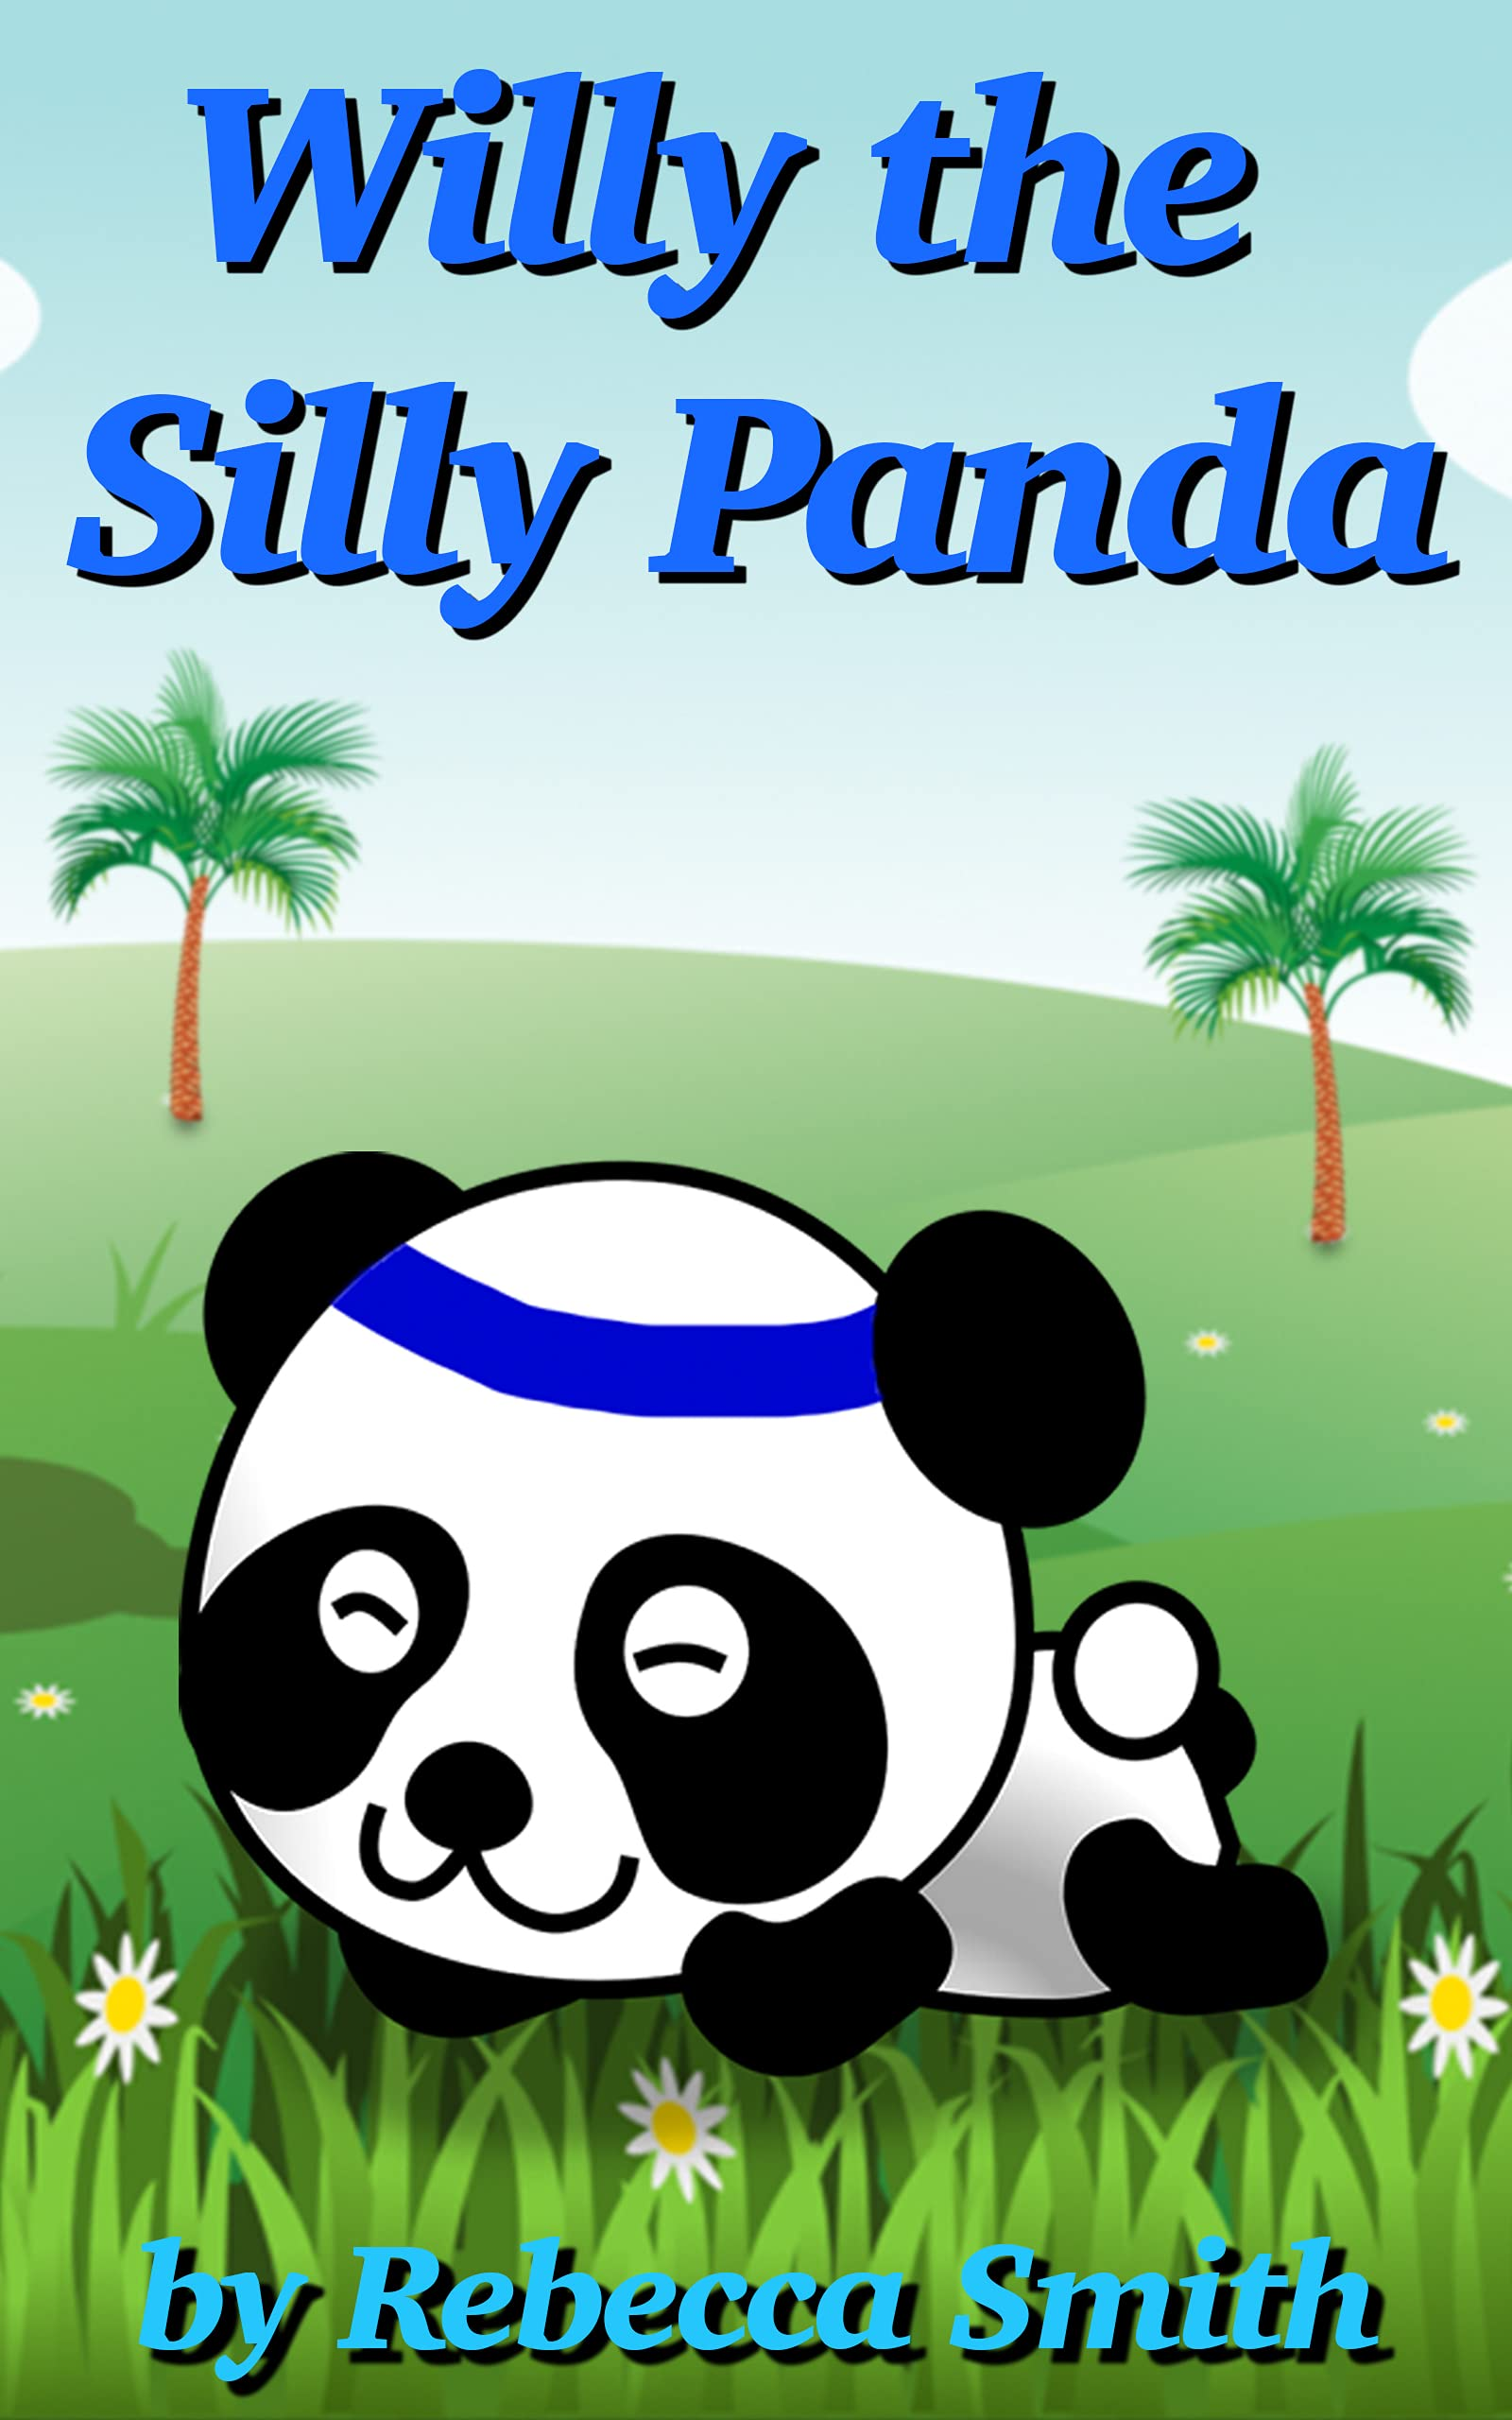 Books For Kids - Willy the Silly Panda: Bedtime Stories For Kids Ages 3-6 (Children's Rhyming Animal Books - Early Learners Bedtime Stories)